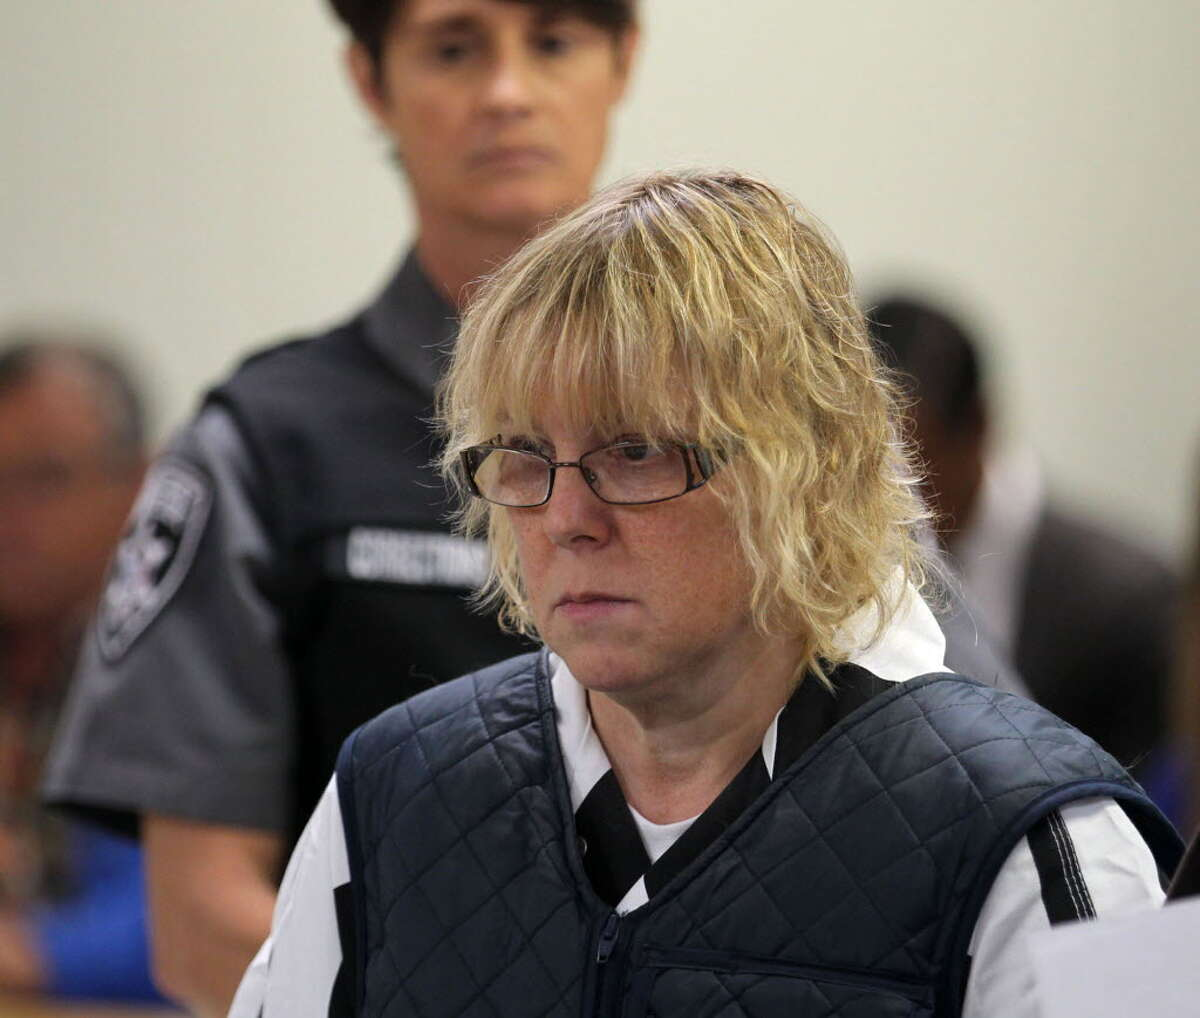 In this June 15, 2015, file photo, Joyce Mitchell appears before Judge Mark Rogers in Plattsburgh (N.Y.) City Court for a hearing. She is charged with helping Richard Matt and David Sweat escape from the Clinton Correctional Facility on June 6. (G.N. Miller/NY Post via AP, Pool, File)